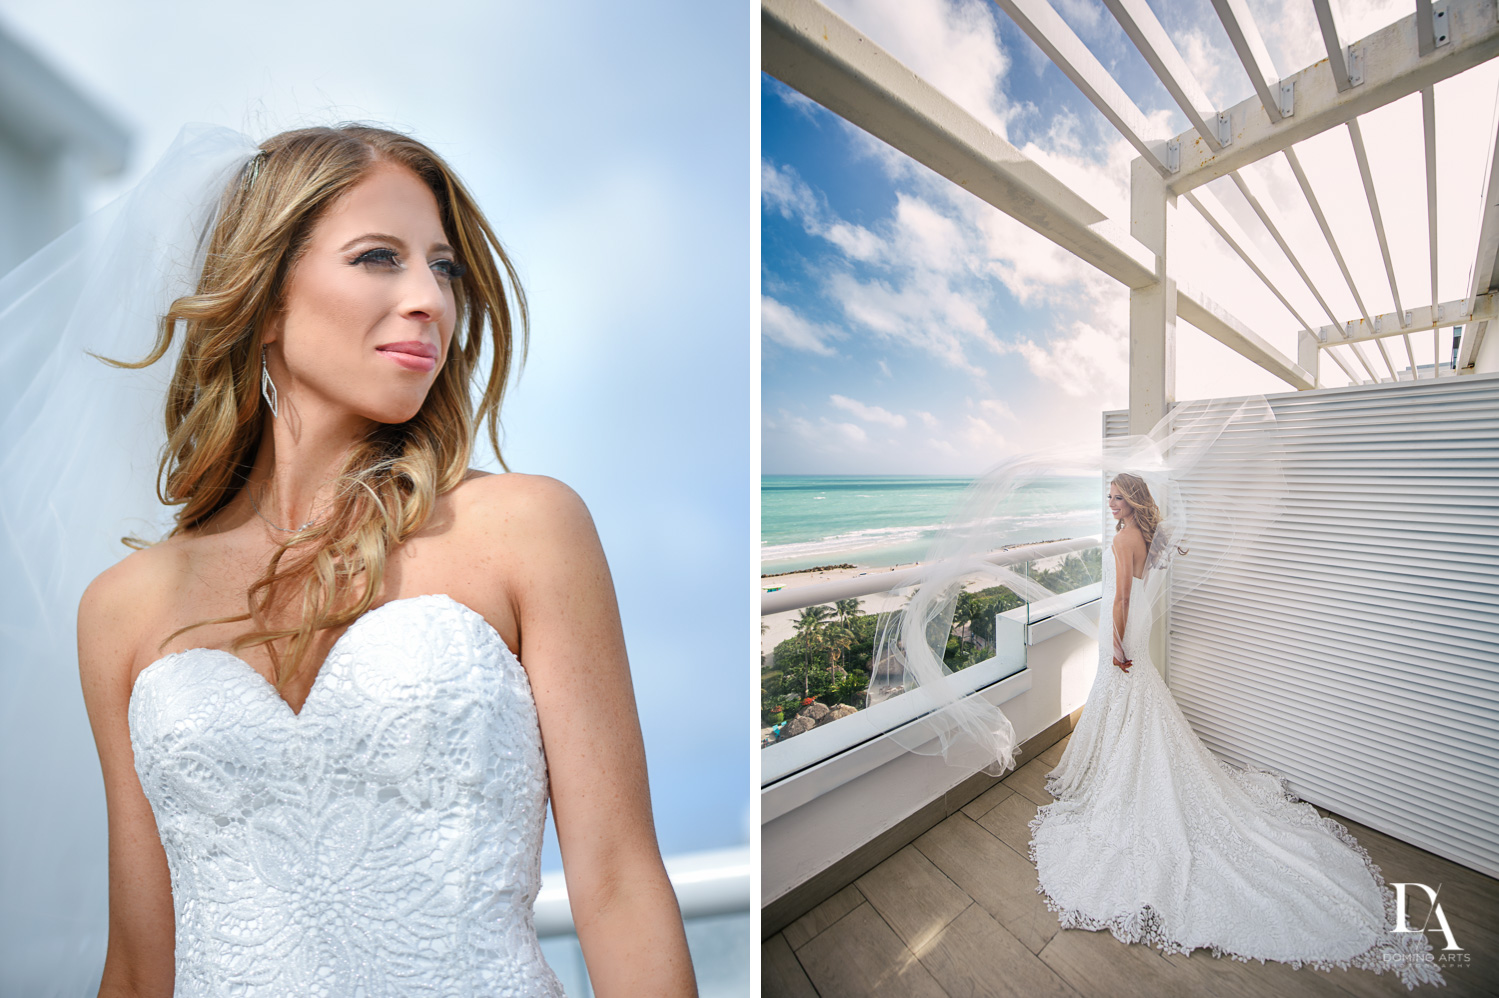 beautiful bride at Tropical Luxury Jewish Wedding in Miami Beach by Domino Arts Photography